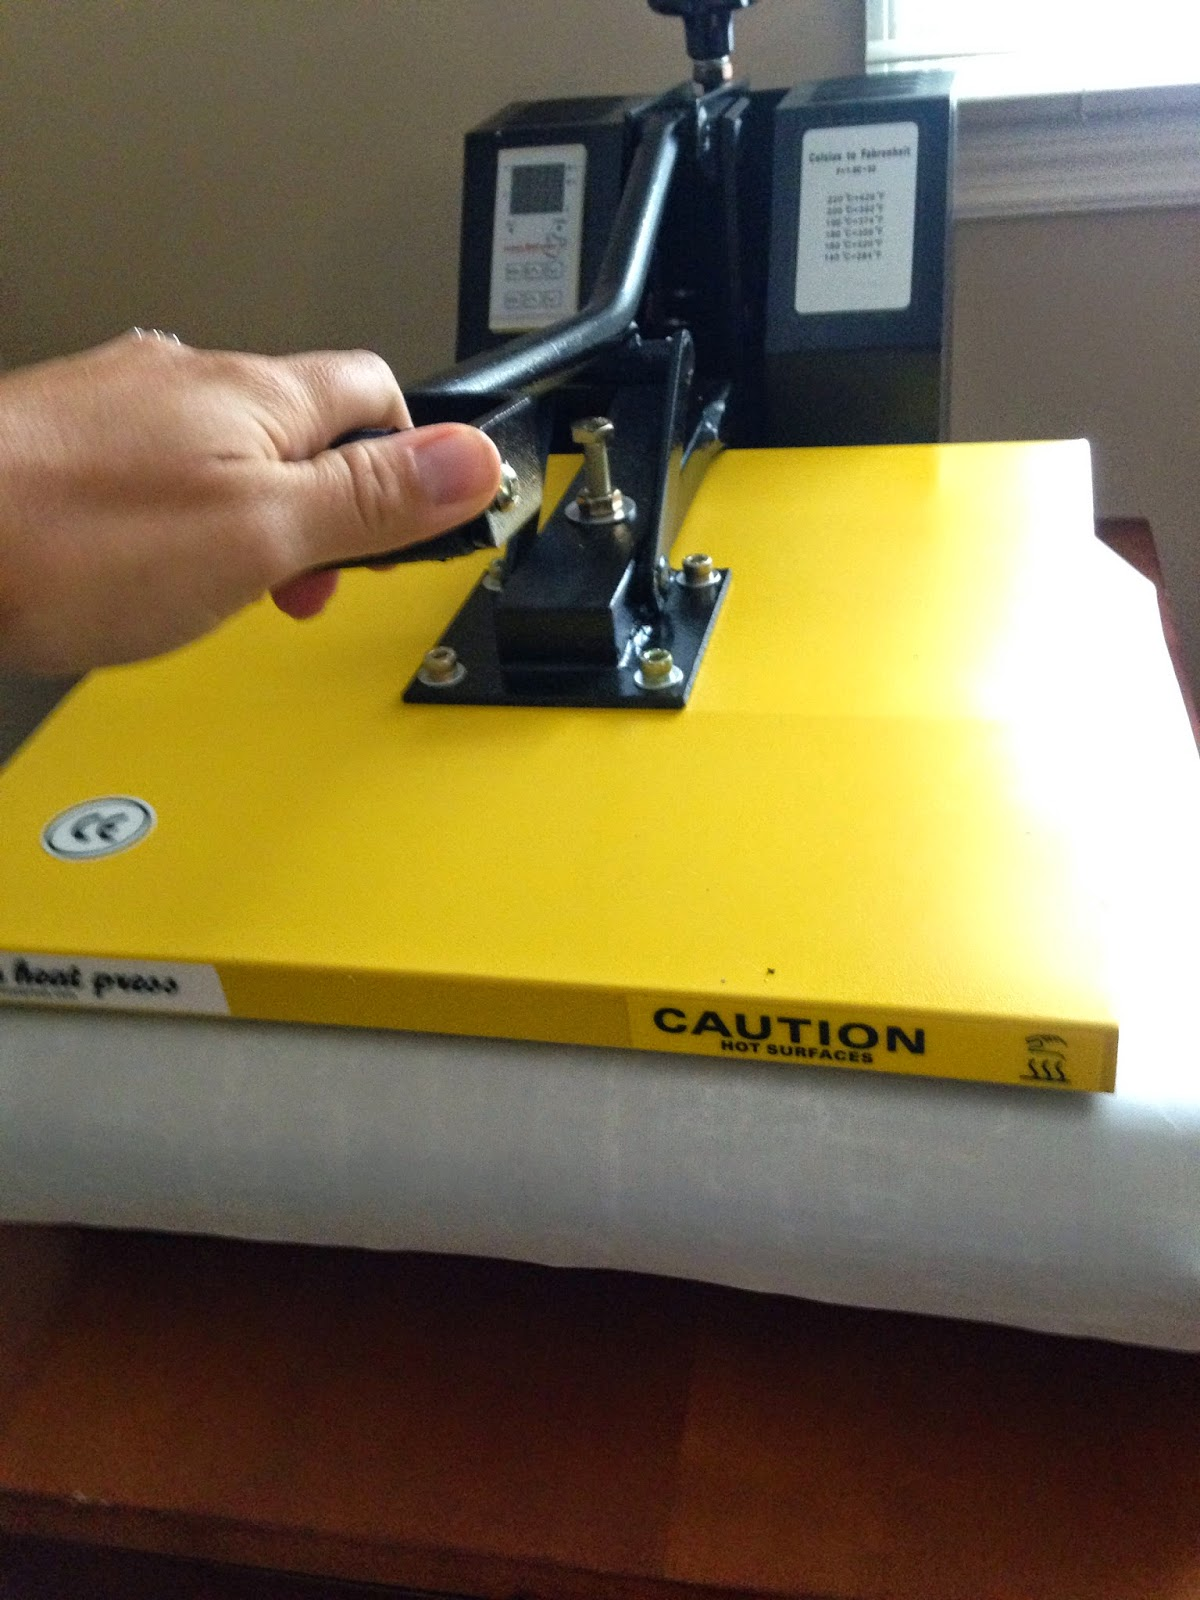 how to use a heat press machine step by step